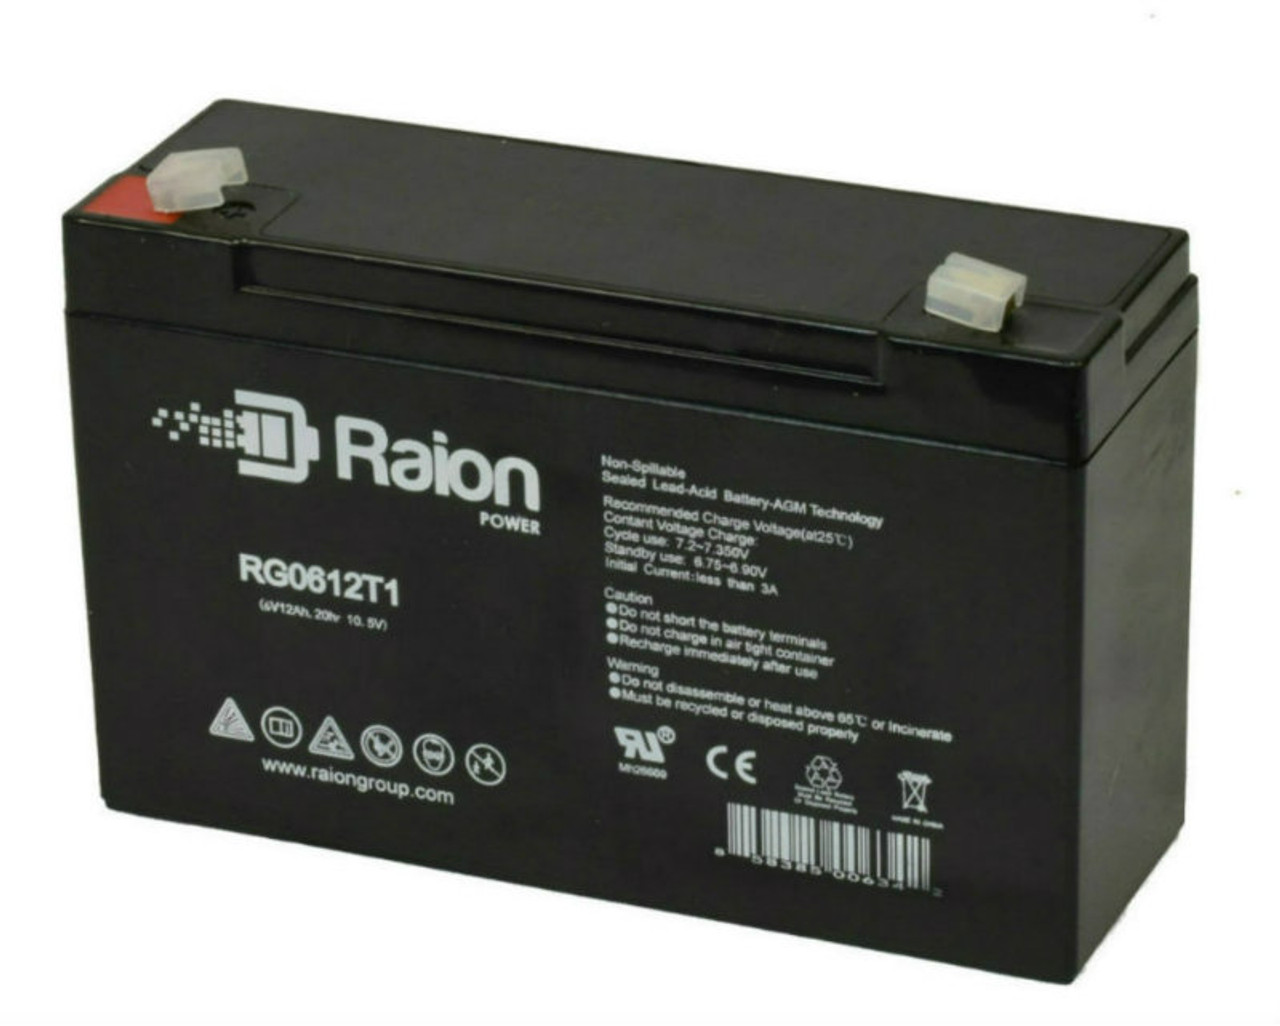 Raion Power RG06120T1 Replacement Battery Pack for Edwards 1611 emergency light